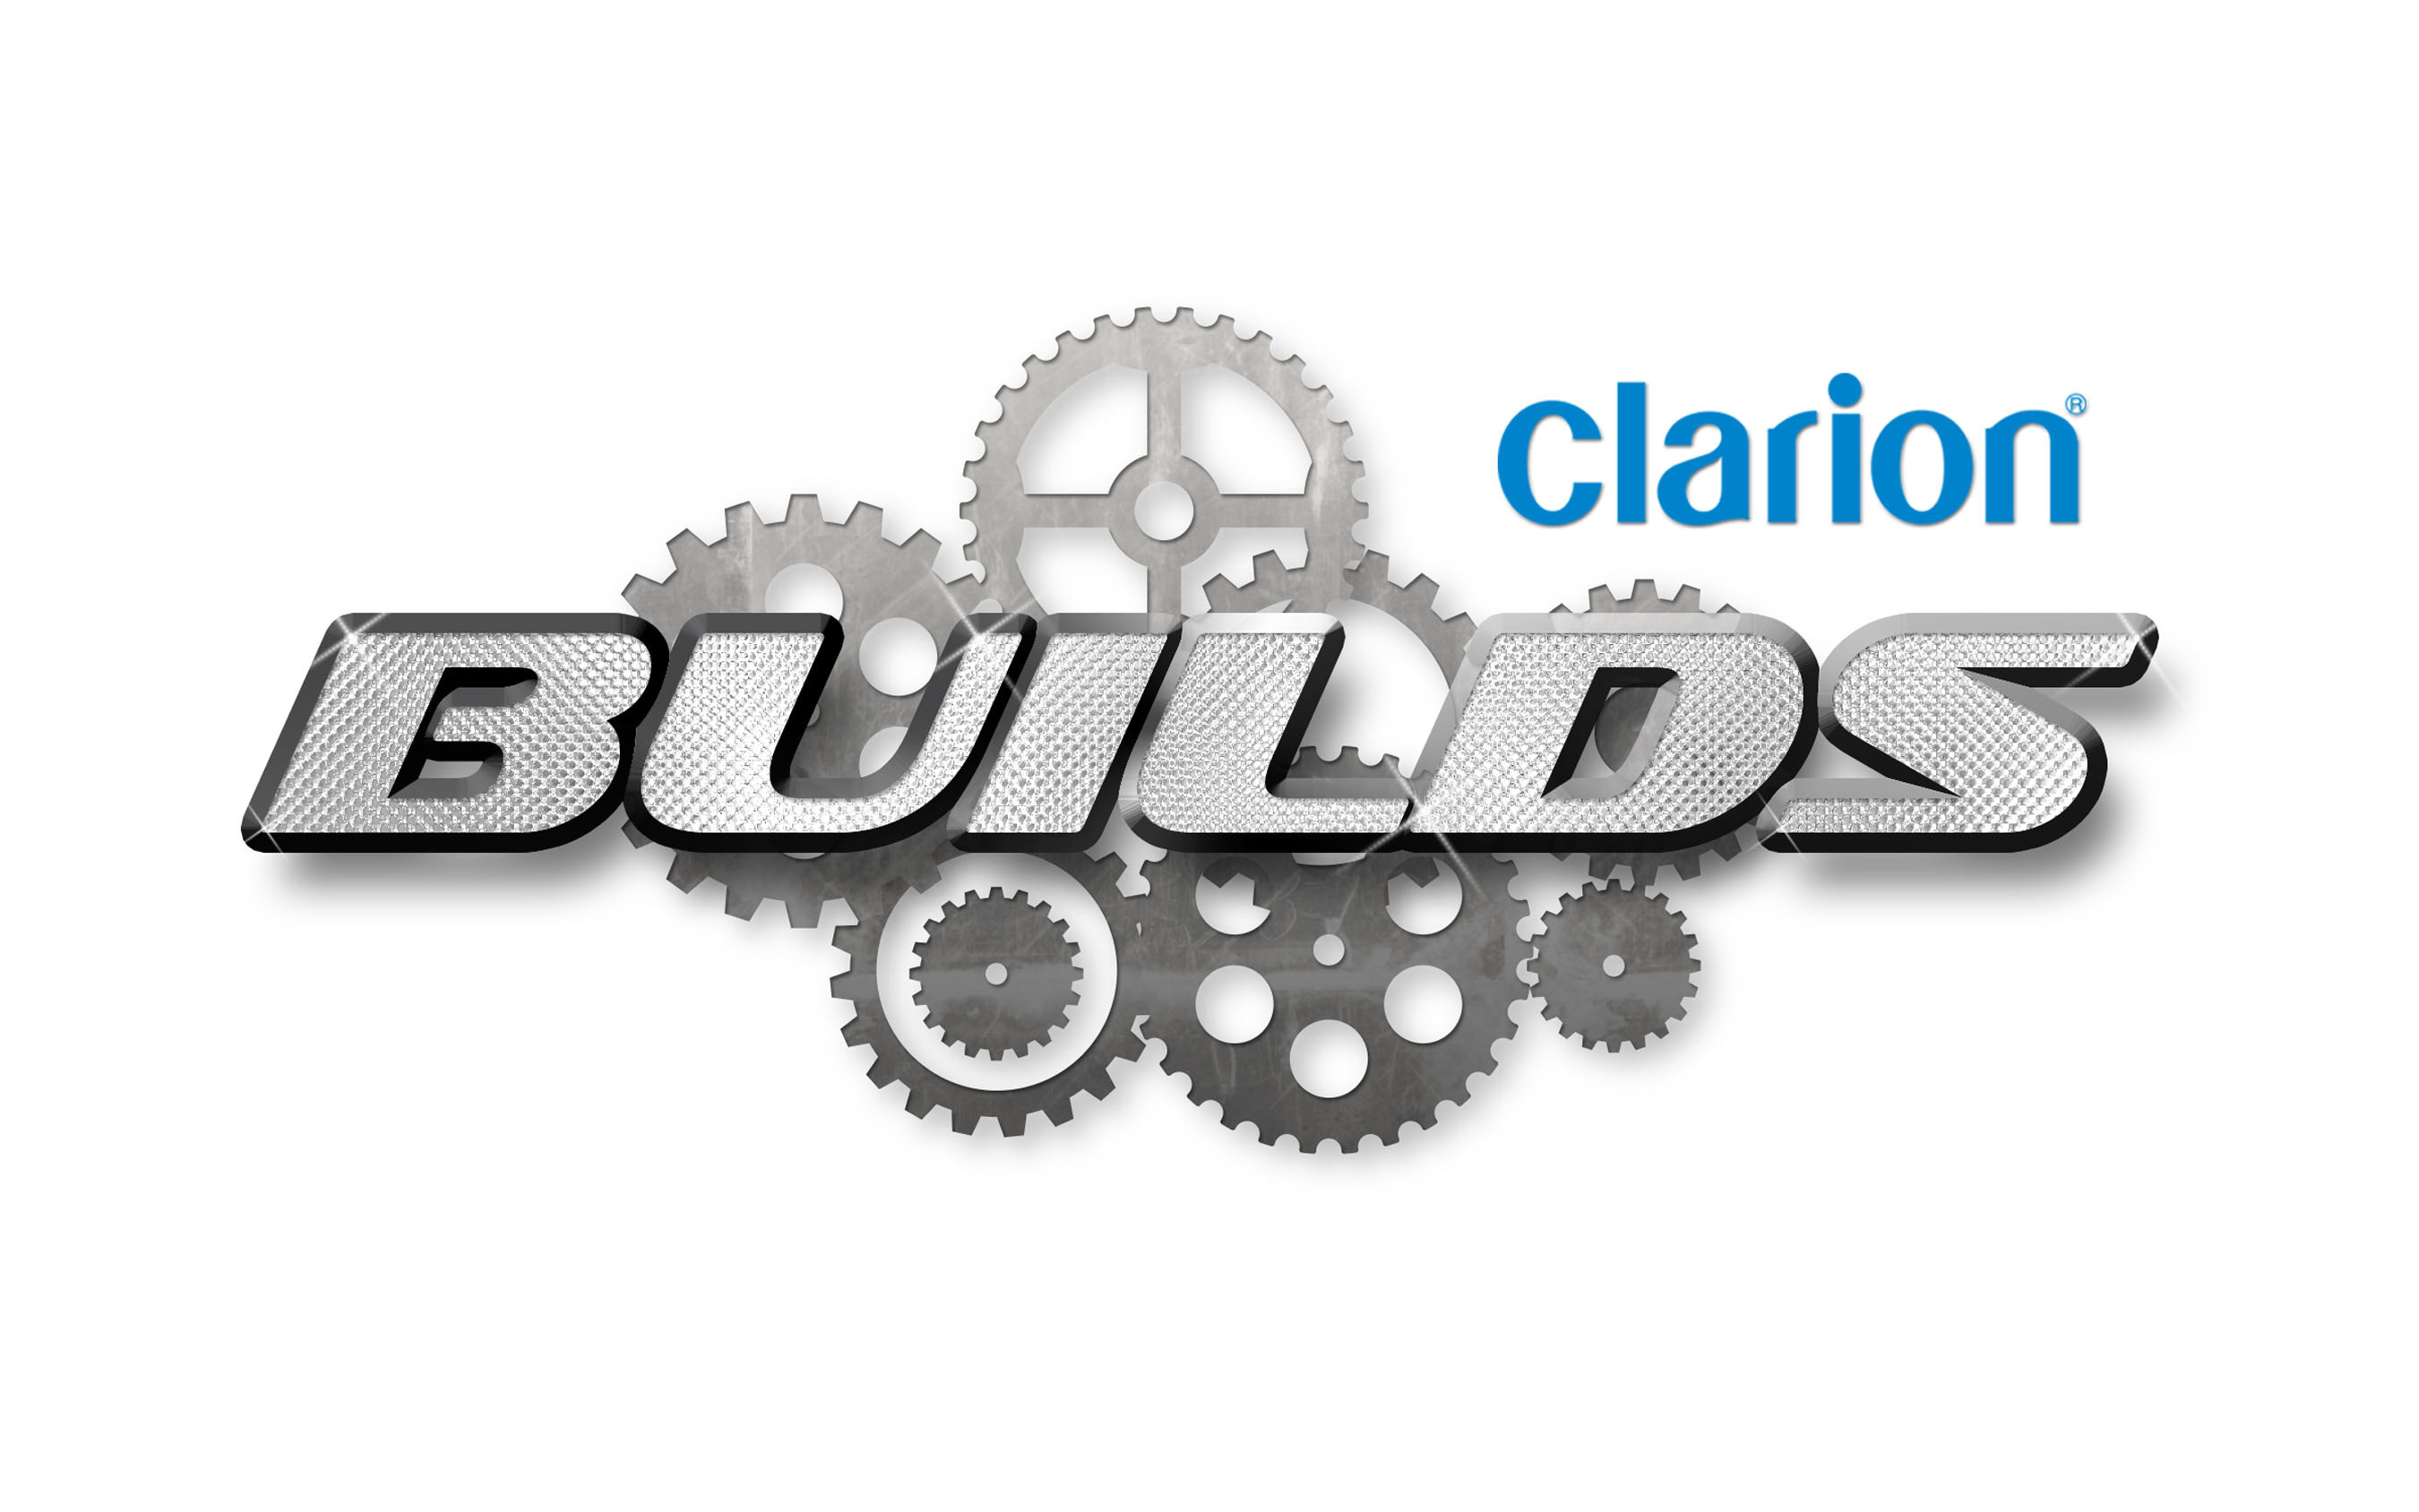 Clarion Builds is an innovative marketing program initiated by Clarion Corporation of America to tackle unique ...